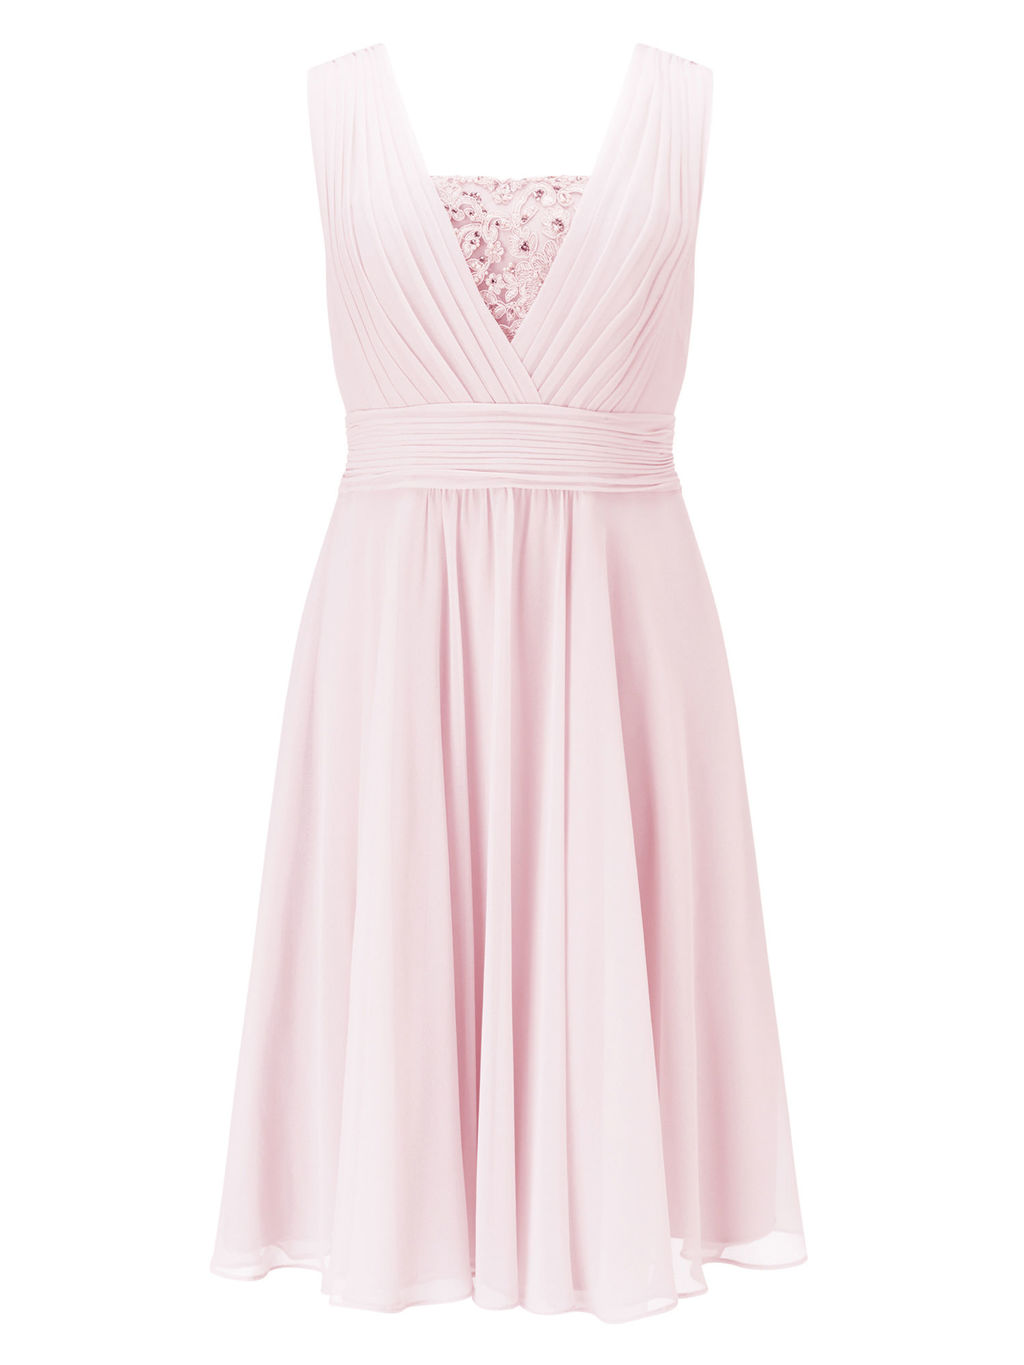 Lace Insert Dress - length: below the knee; neckline: low v-neck; pattern: plain; sleeve style: sleeveless; predominant colour: pink; fit: fitted at waist & bust; style: fit & flare; fibres: polyester/polyamide - 100%; occasions: occasion; hip detail: subtle/flattering hip detail; sleeve length: sleeveless; texture group: sheer fabrics/chiffon/organza etc.; pattern type: fabric; embellishment: lace; season: s/s 2016; wardrobe: event; embellishment location: bust